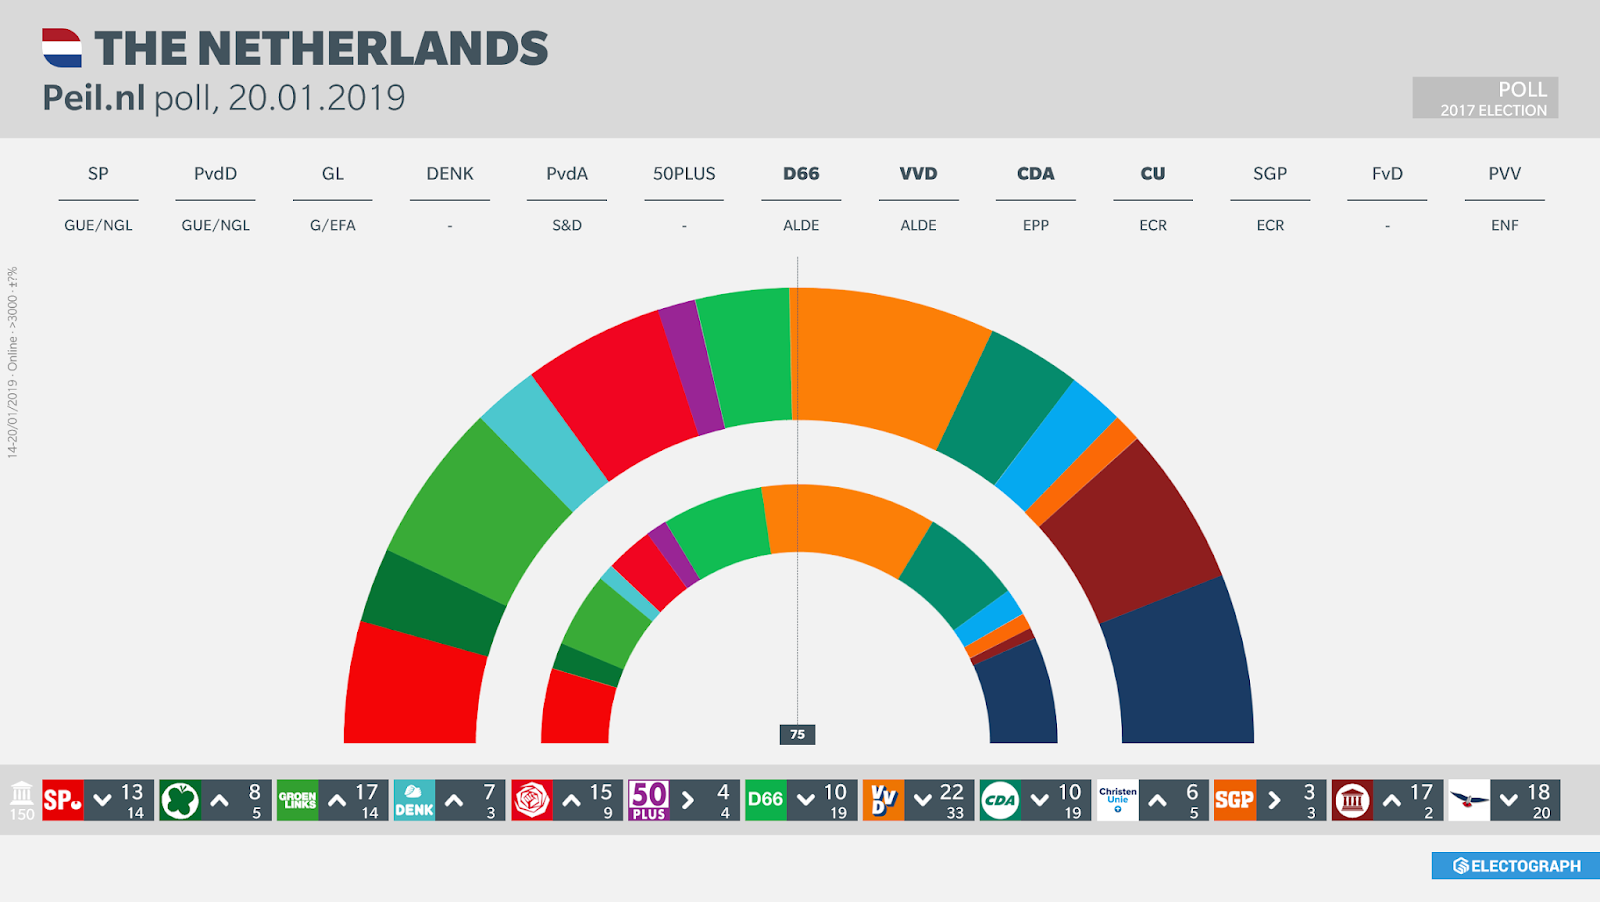 THE NETHERLANDS: Peil.nl poll chart, 20 January 2019